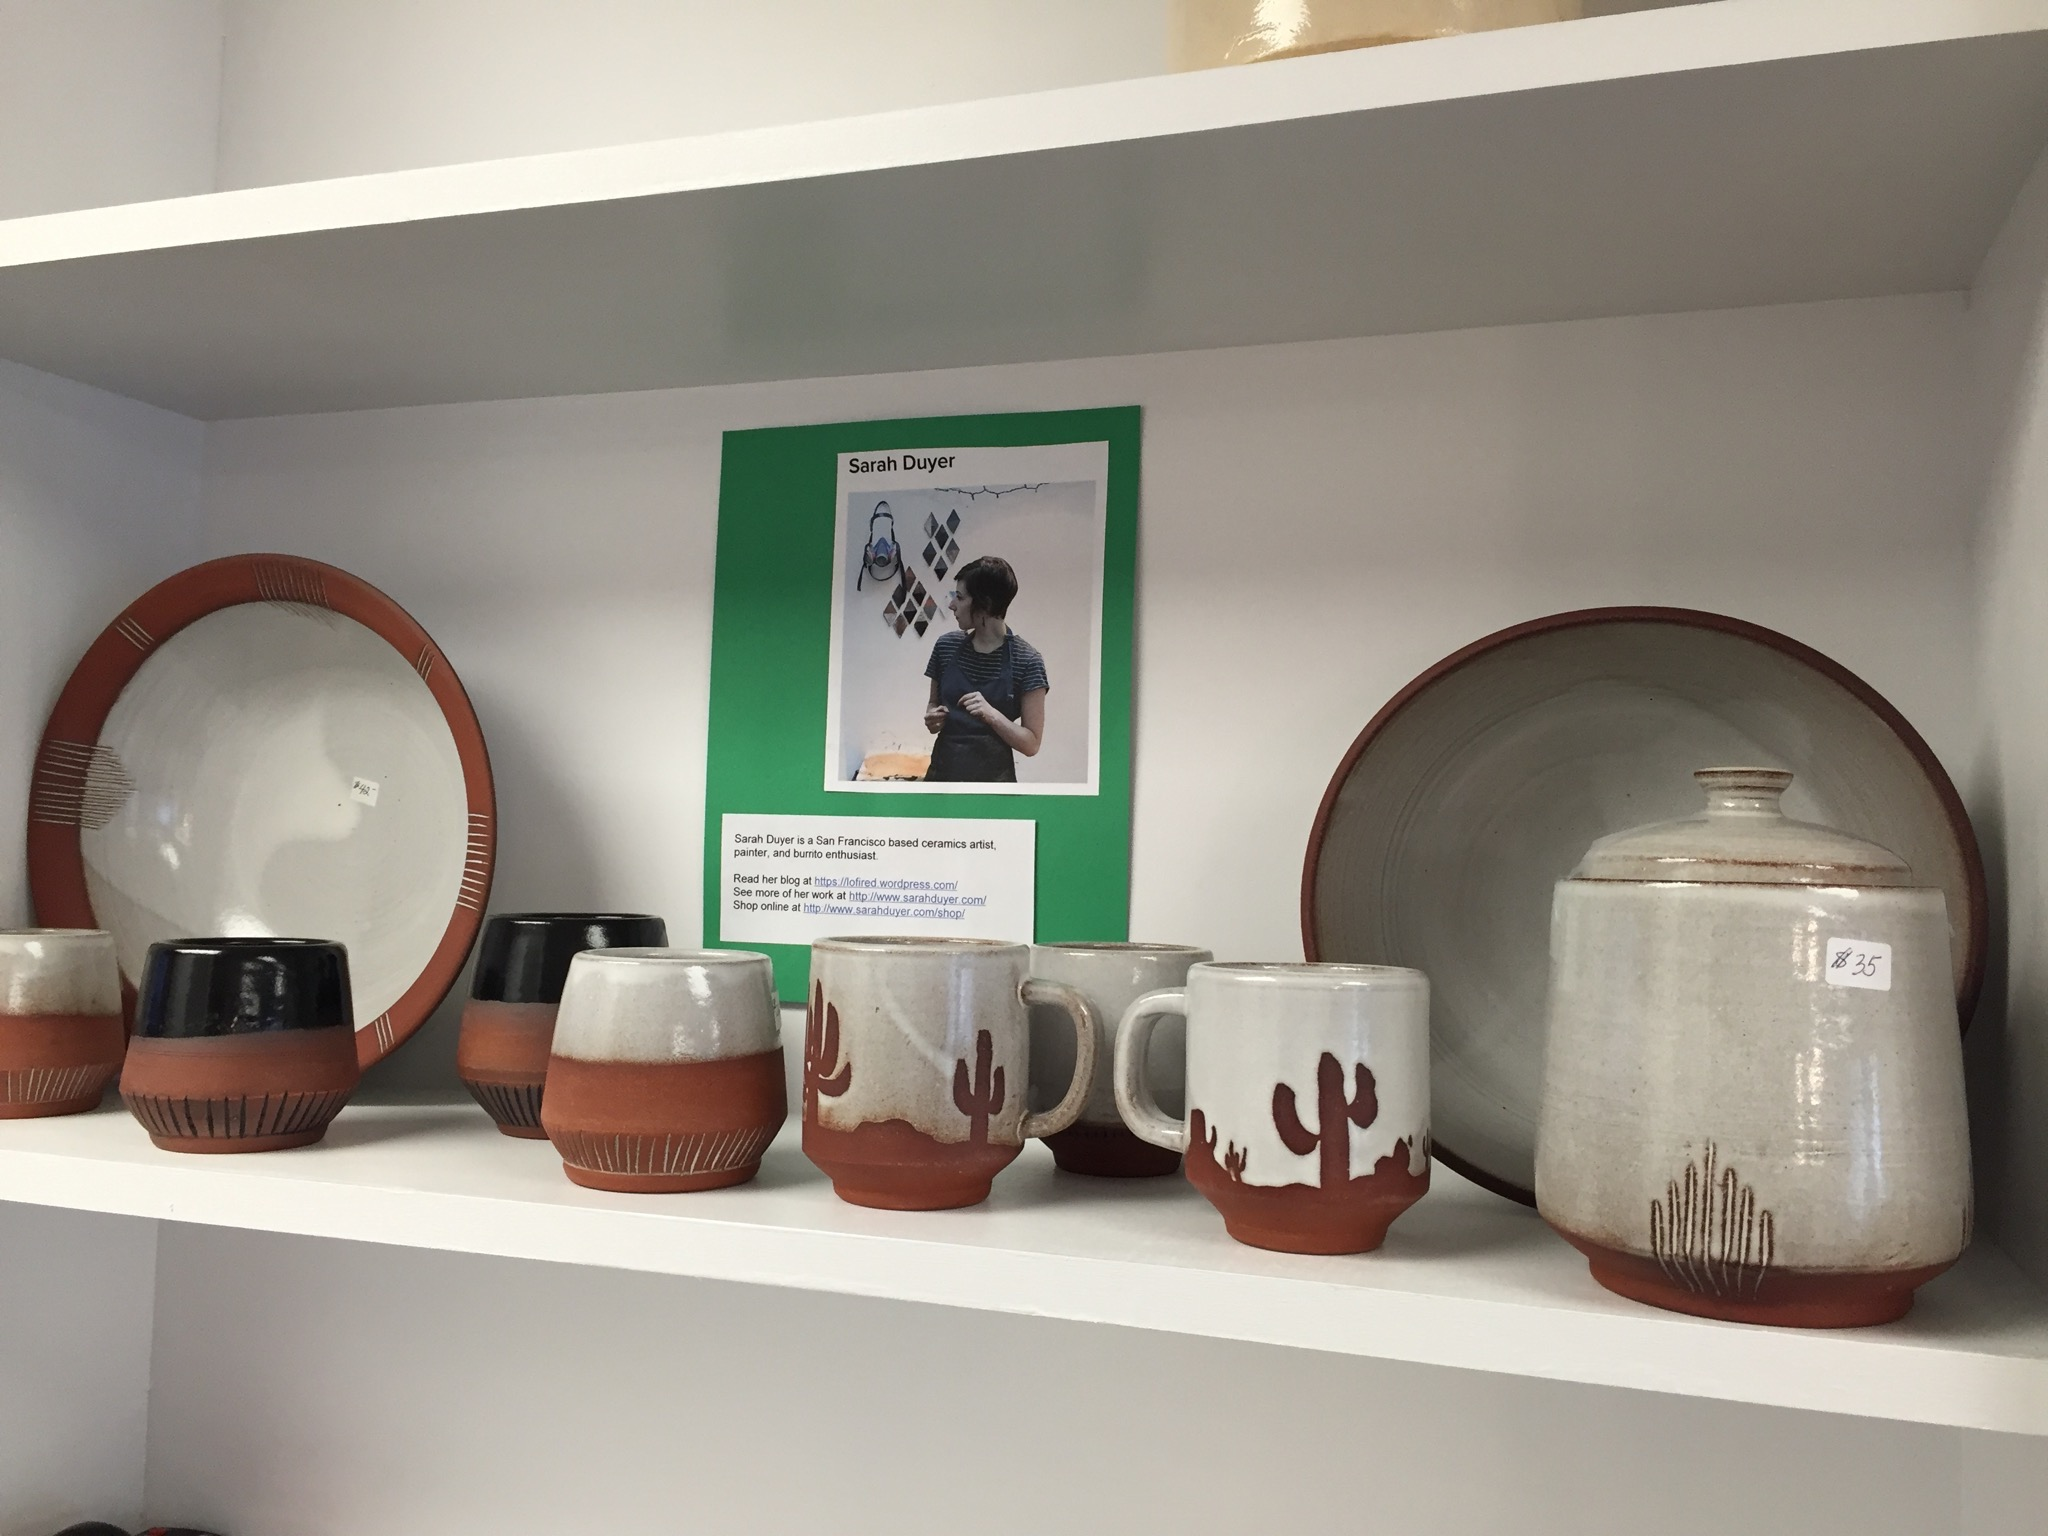 Pottery by ceramic artist Sarah Duyer, for sale at Creative Corner.